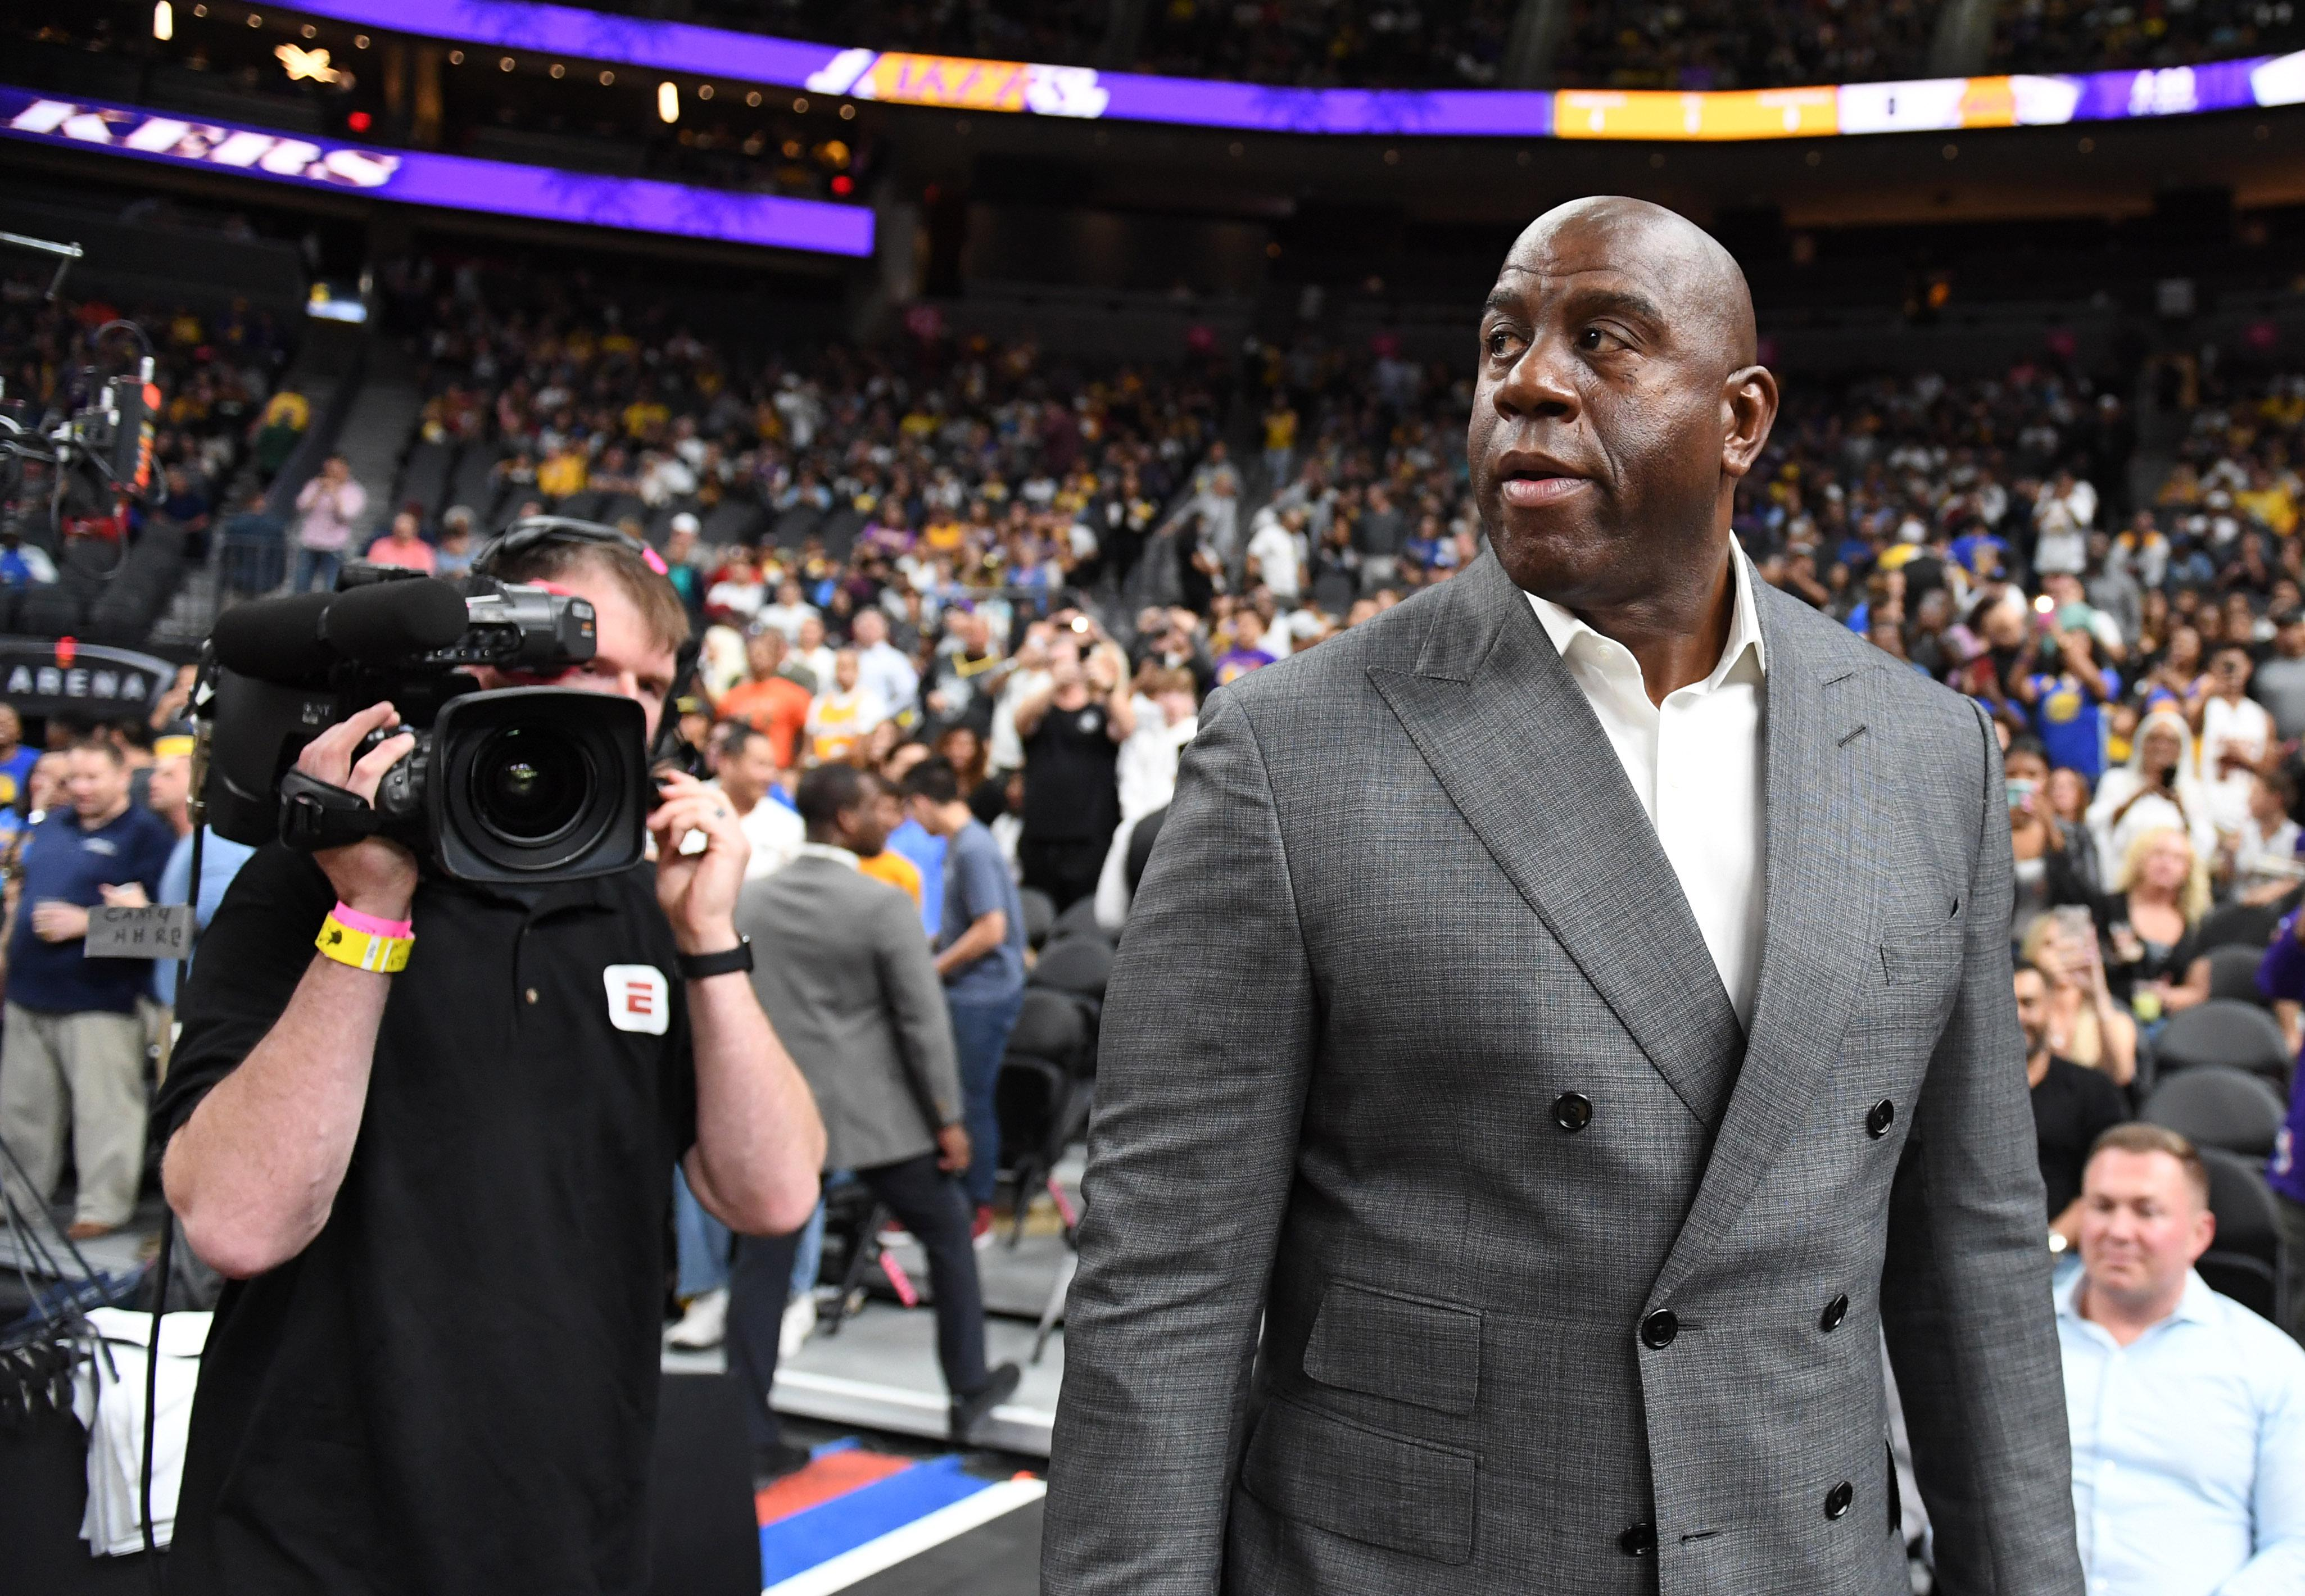 LAS VEGAS, NEVADA - OCTOBER 10:  Los Angeles Lakers president of basketball operations Earvin 'Magic' Johnson arrives at the Lakers' preseason game against the Golden State Warriors at T-Mobile Arena on October 10, 2018 in Las Vegas, Nevada. The Lakers defeated the Warriors 123-113. NOTE TO USER: User expressly acknowledges and agrees that, by downloading and or using this photograph, User is consenting to the terms and conditions of the Getty Images License Agreement.  (Photo by Ethan Miller/Getty Images)